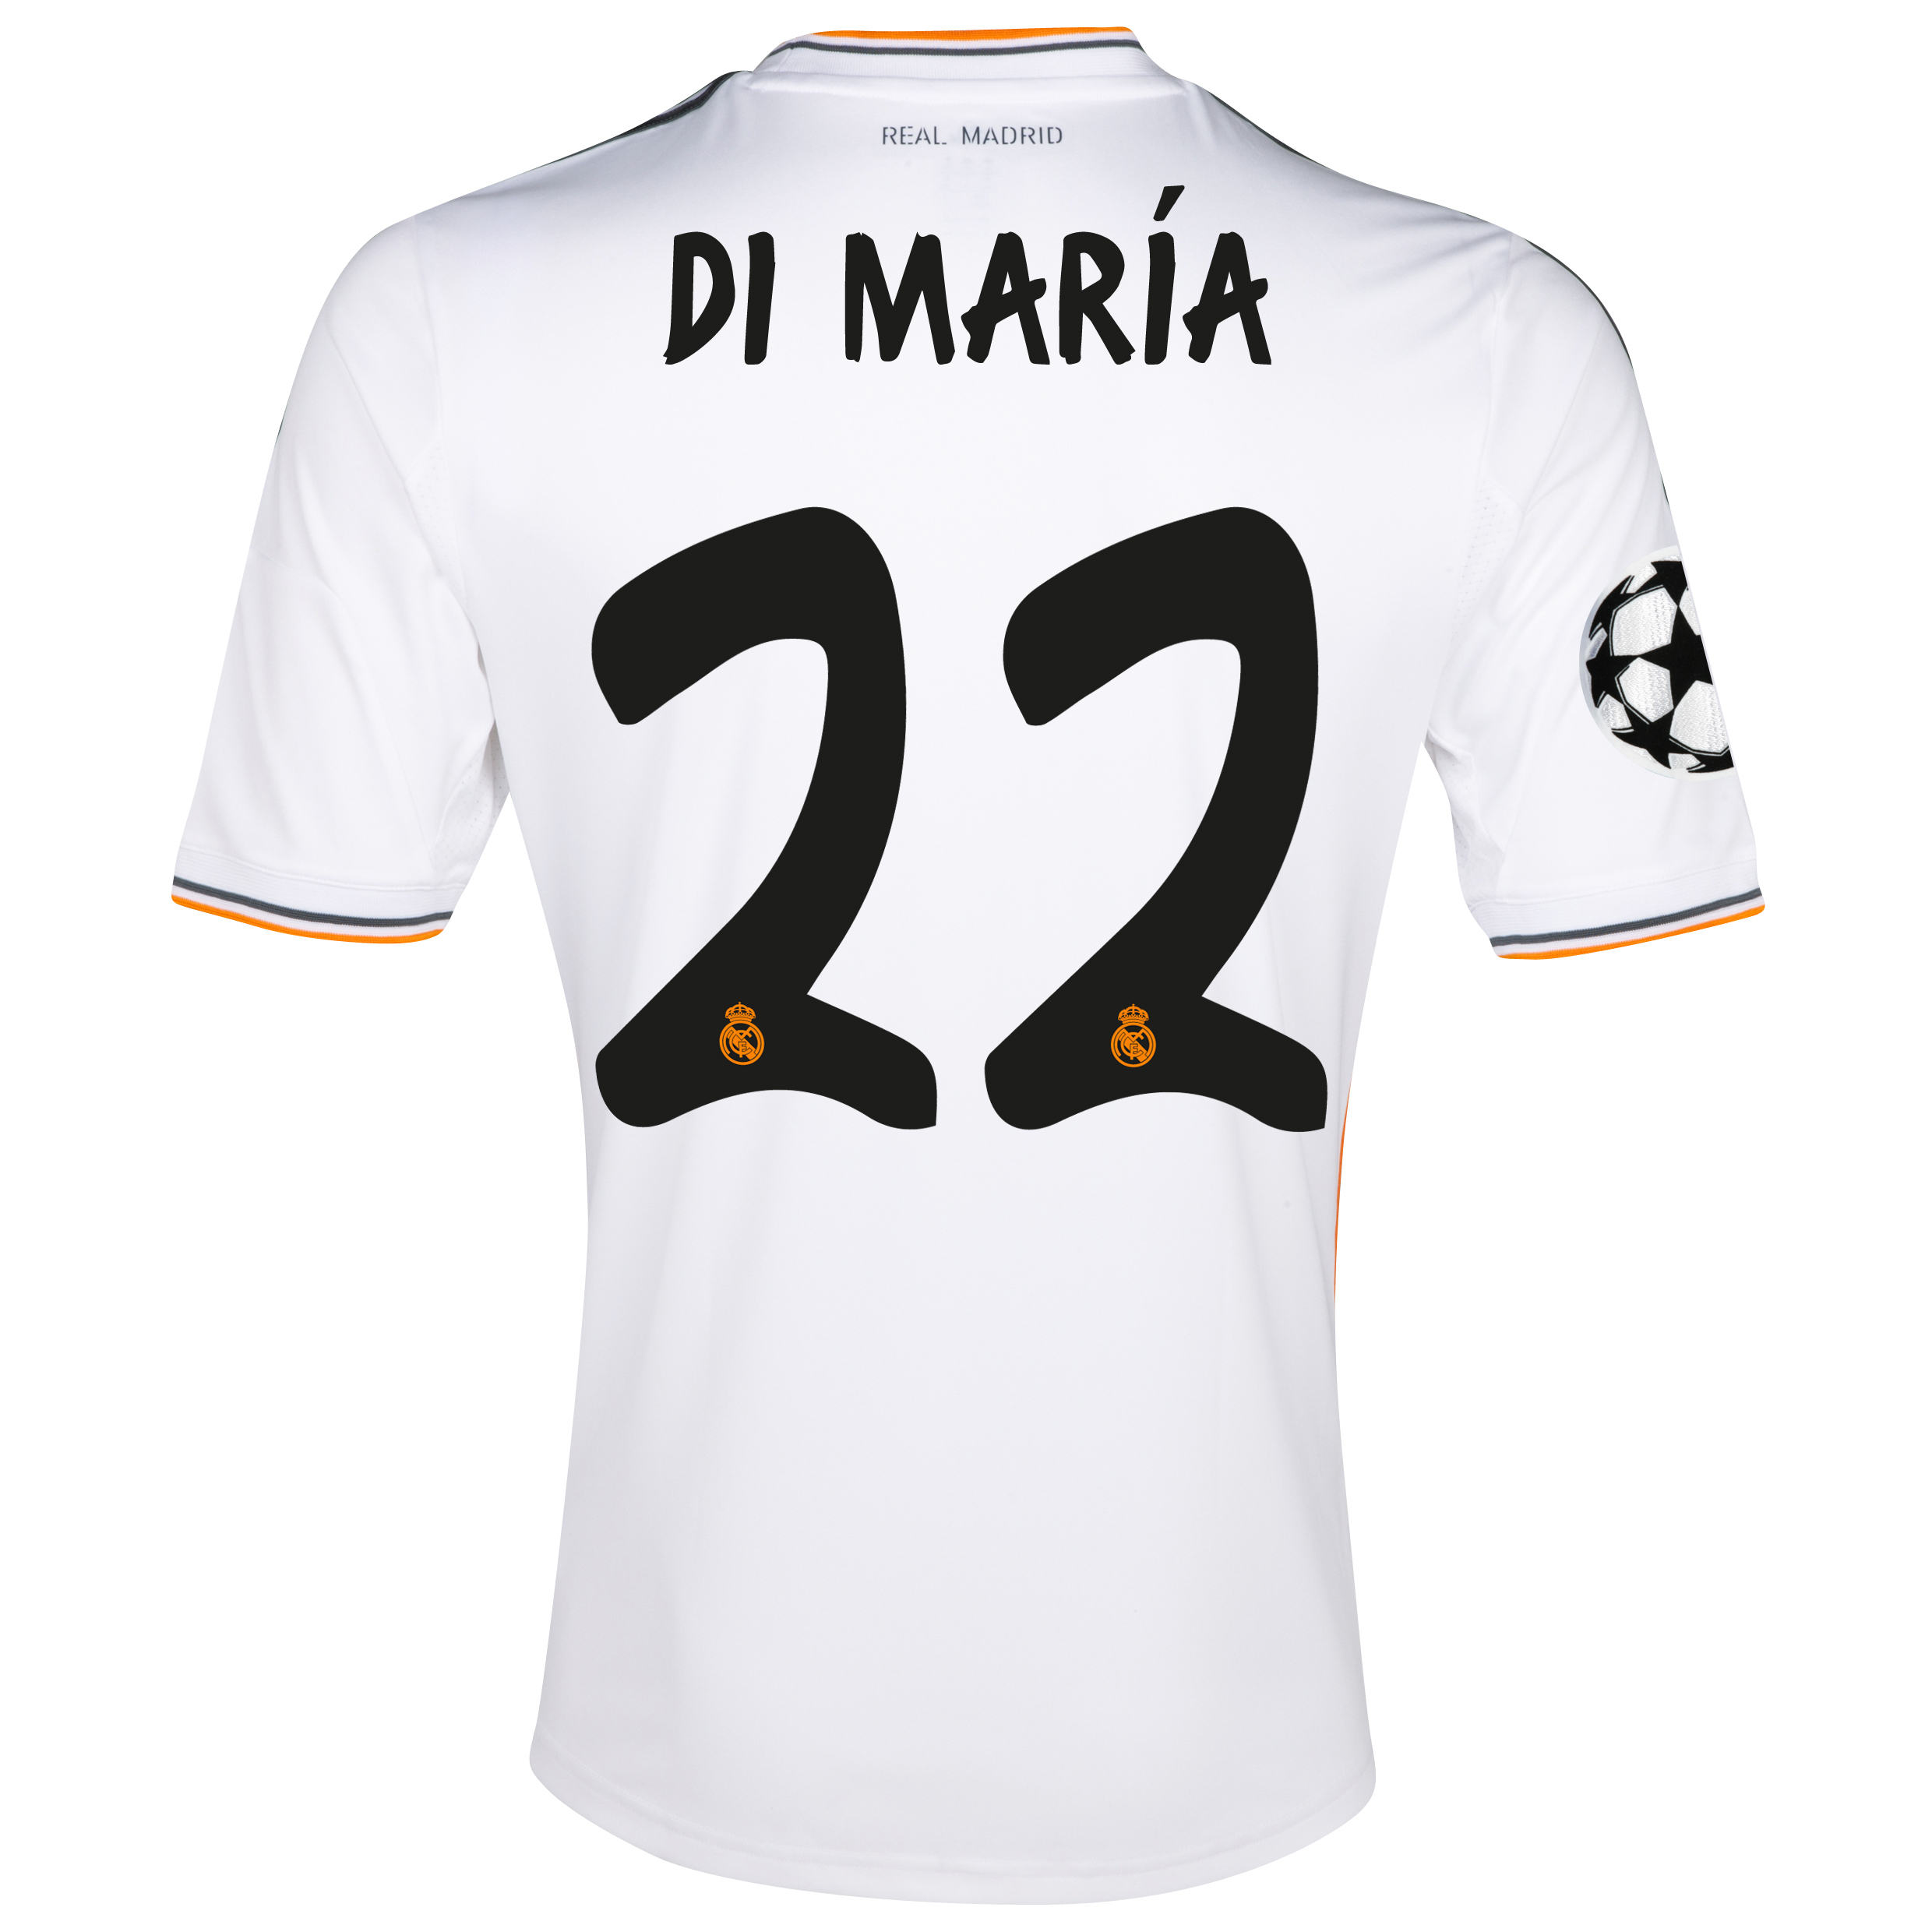 Real Madrid UEFA Champions League Home Shirt 2013/14 - kids with Di María 22 printing